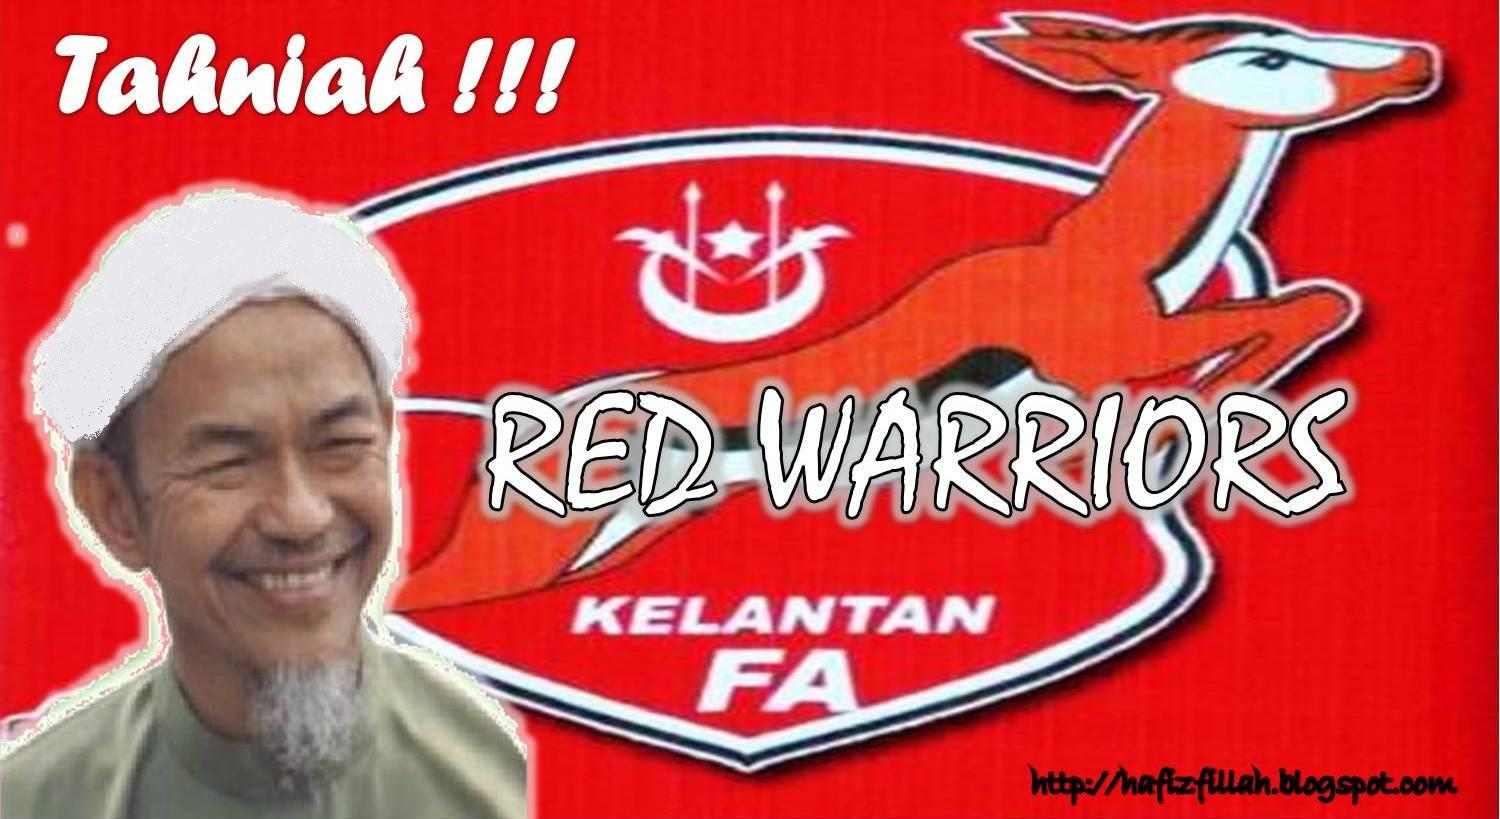 Tahniah Red Warriors, GOMO KLATE GOMO!!!